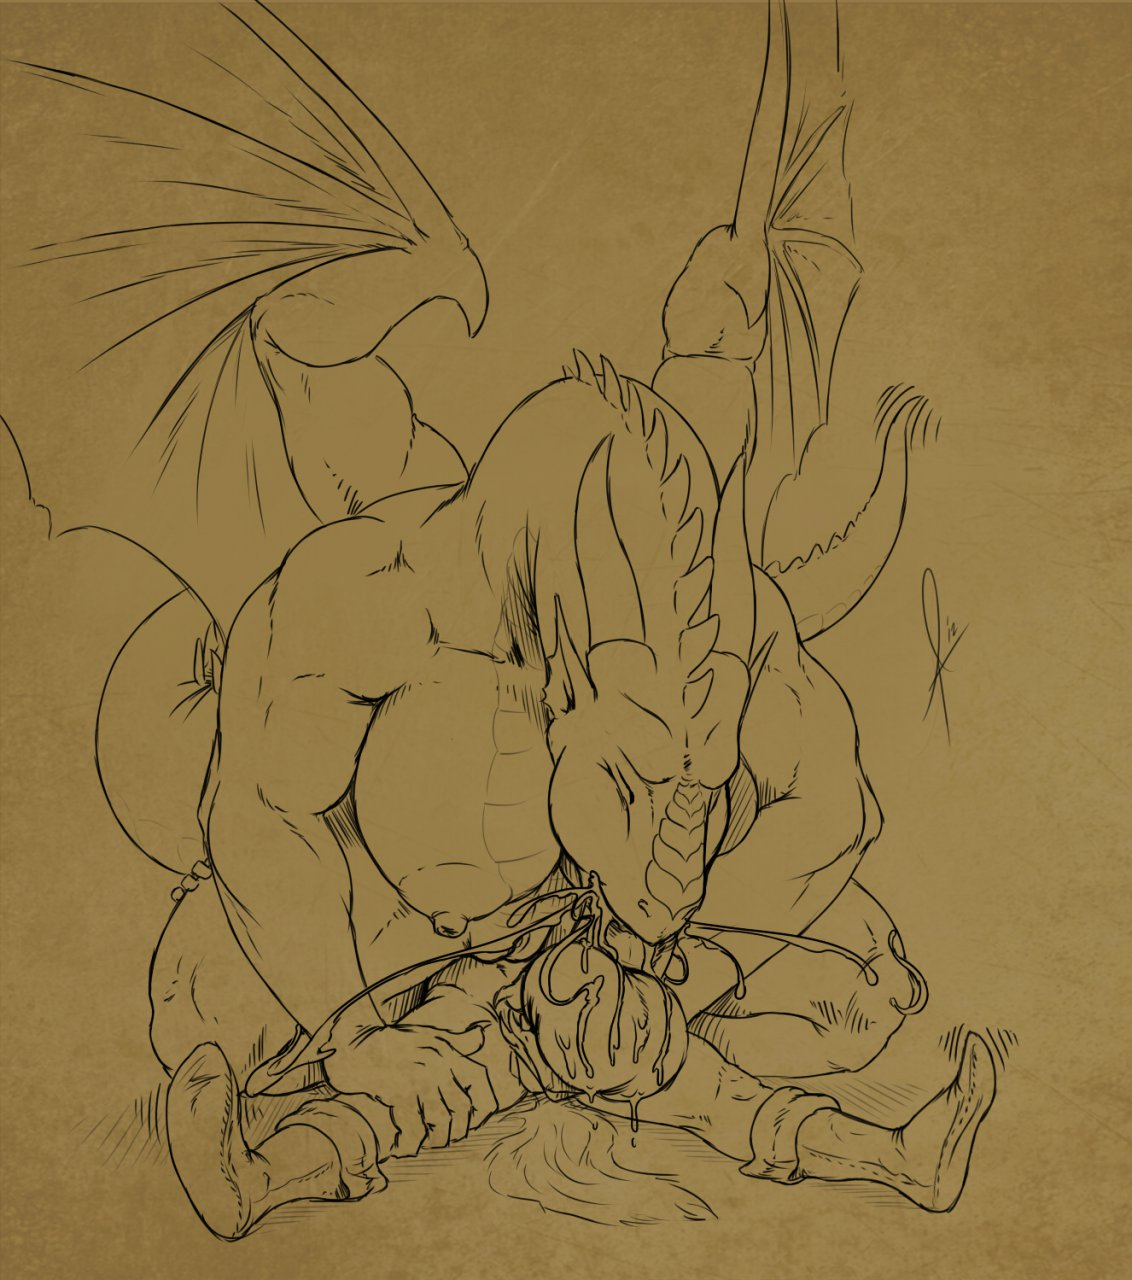 dragons e621 there here be Where can i get a foot job